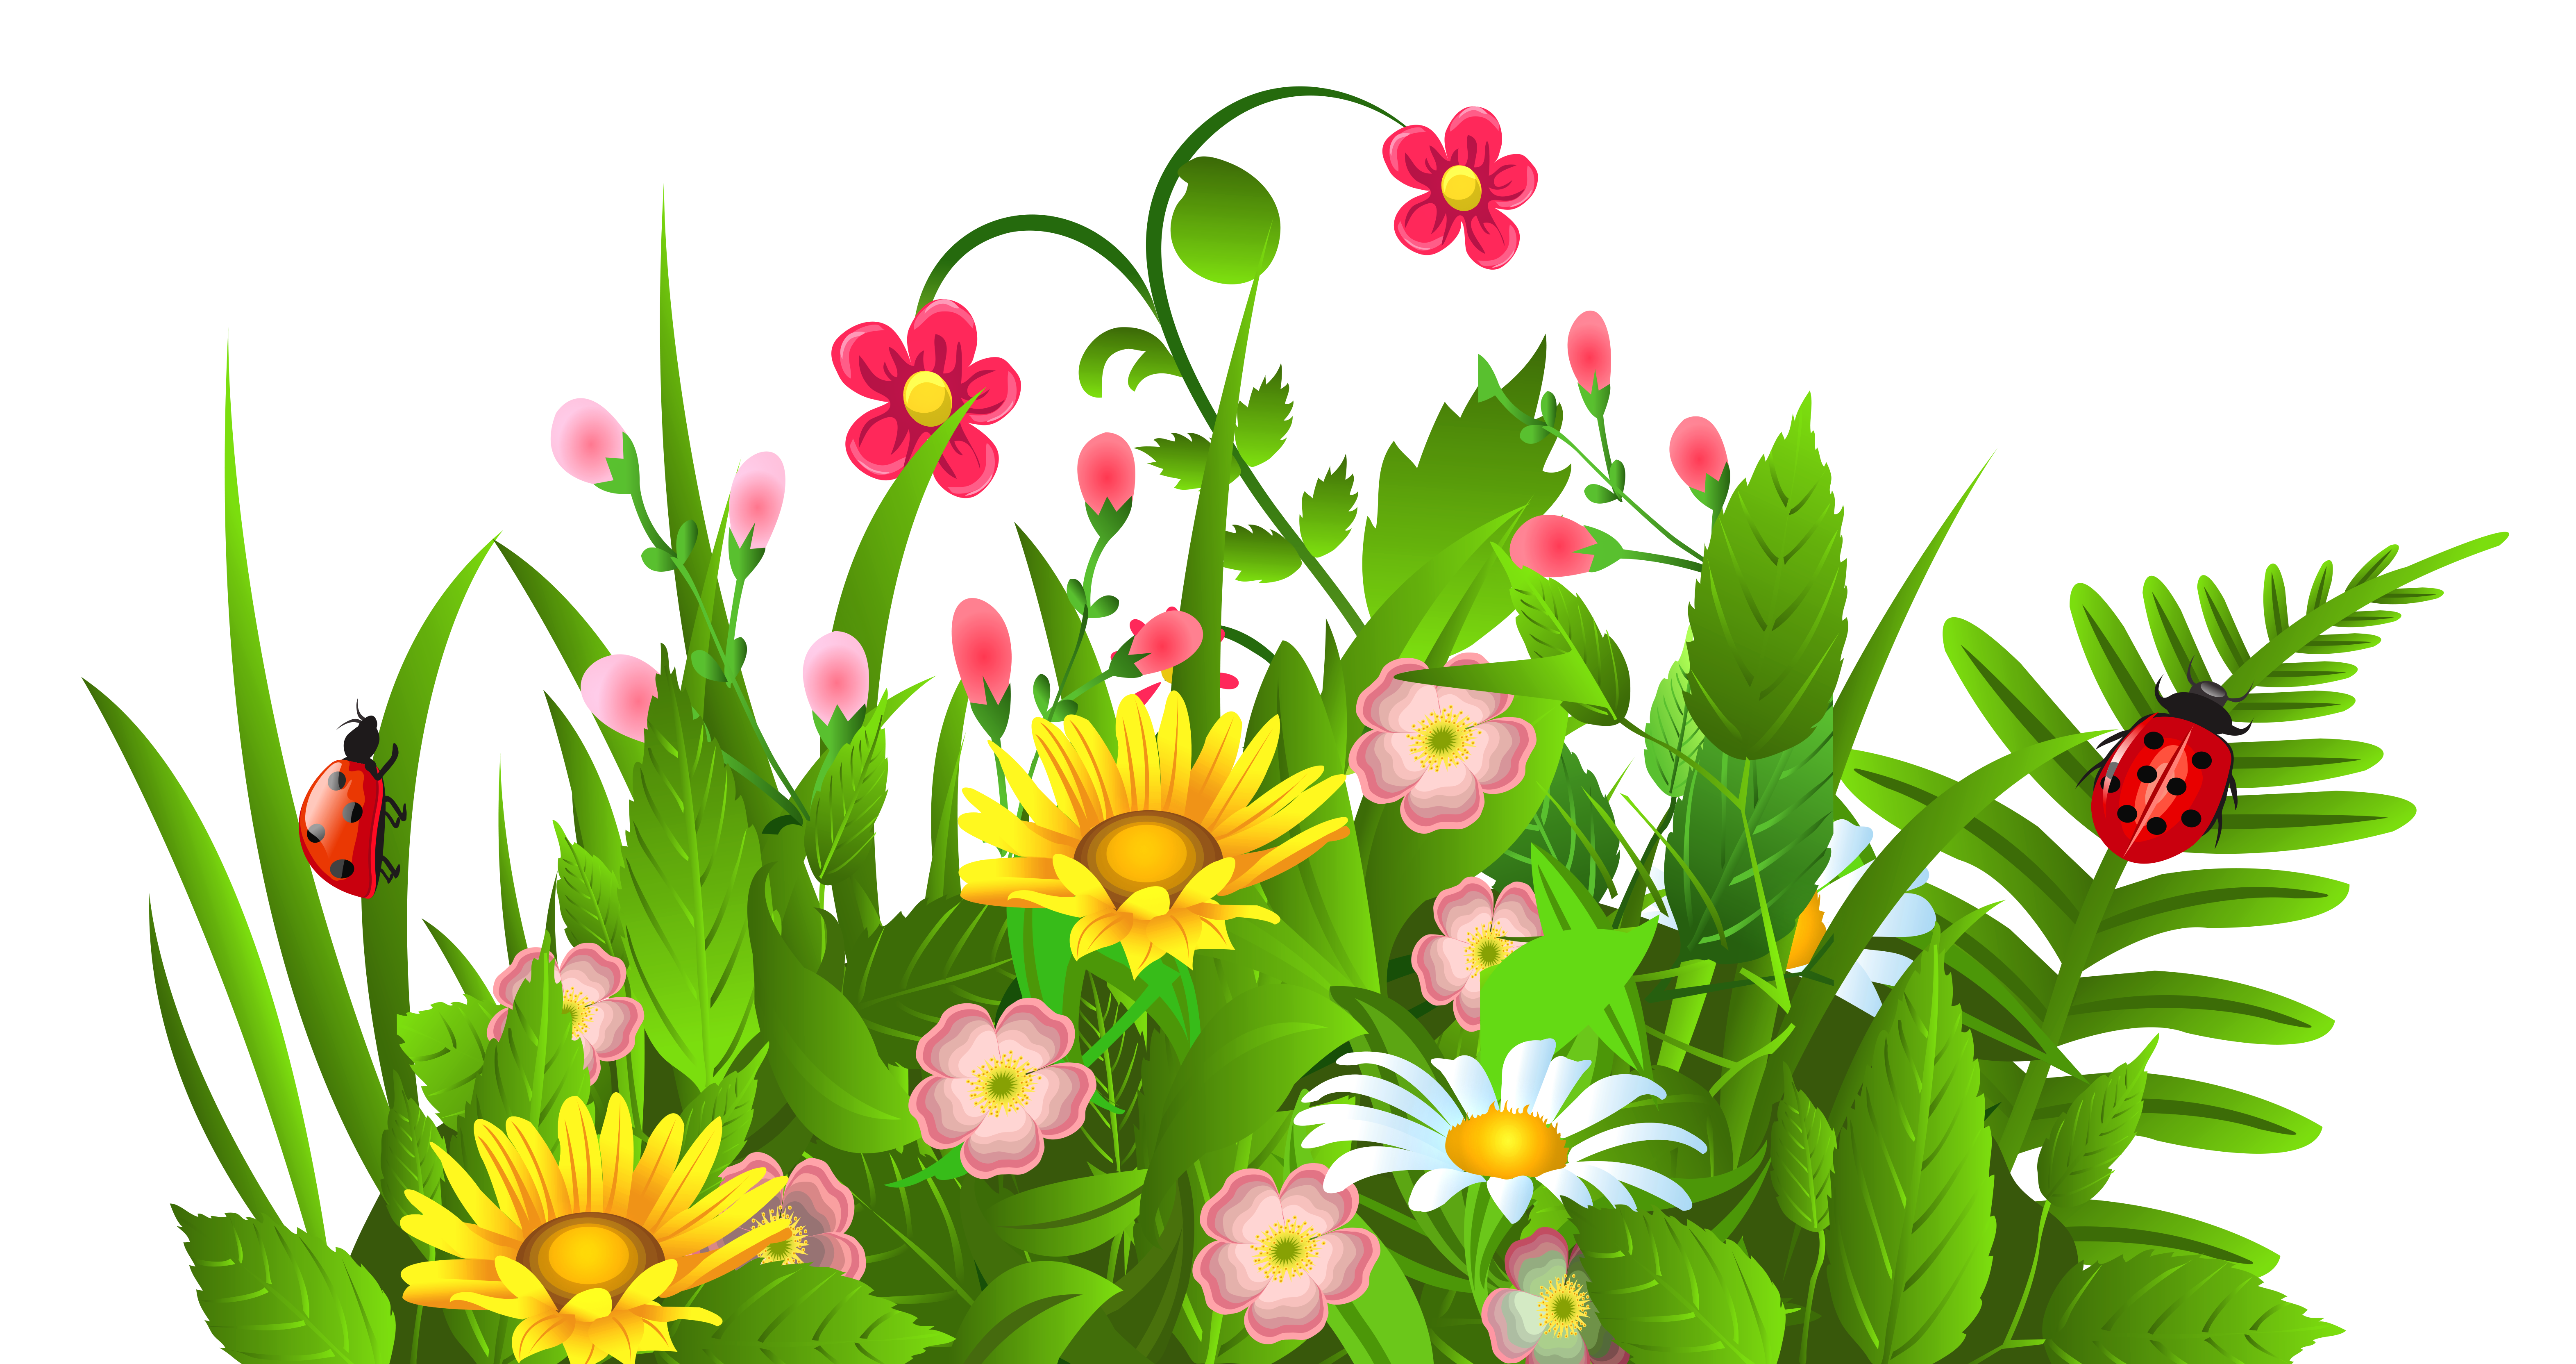 6287x3328 Cute Grass And Flowers Png Clipartu200b Gallery Yopriceville